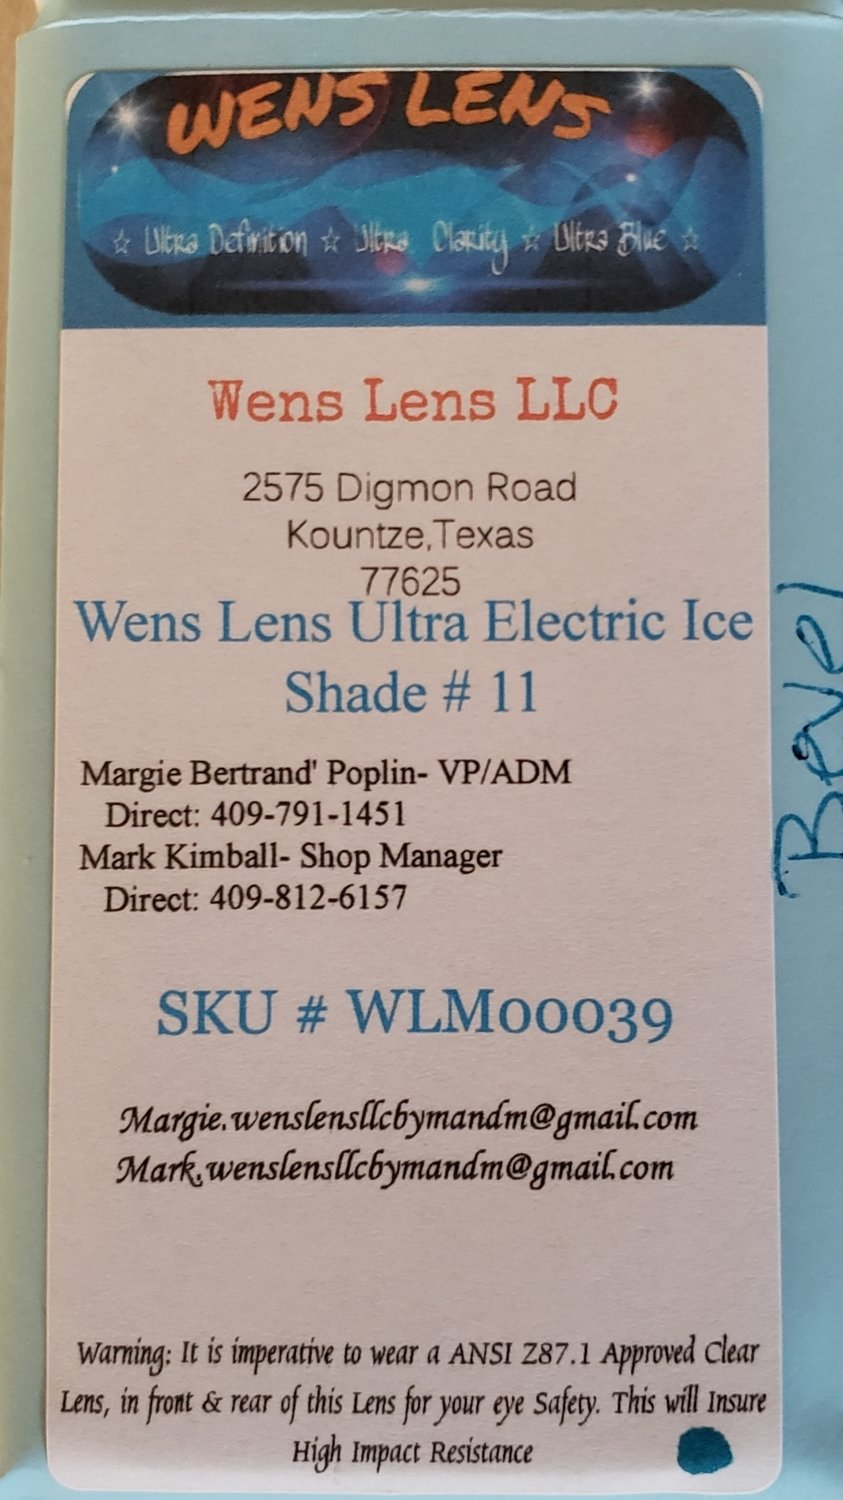 Wens Lens Ultra Electric Ice Shade #11